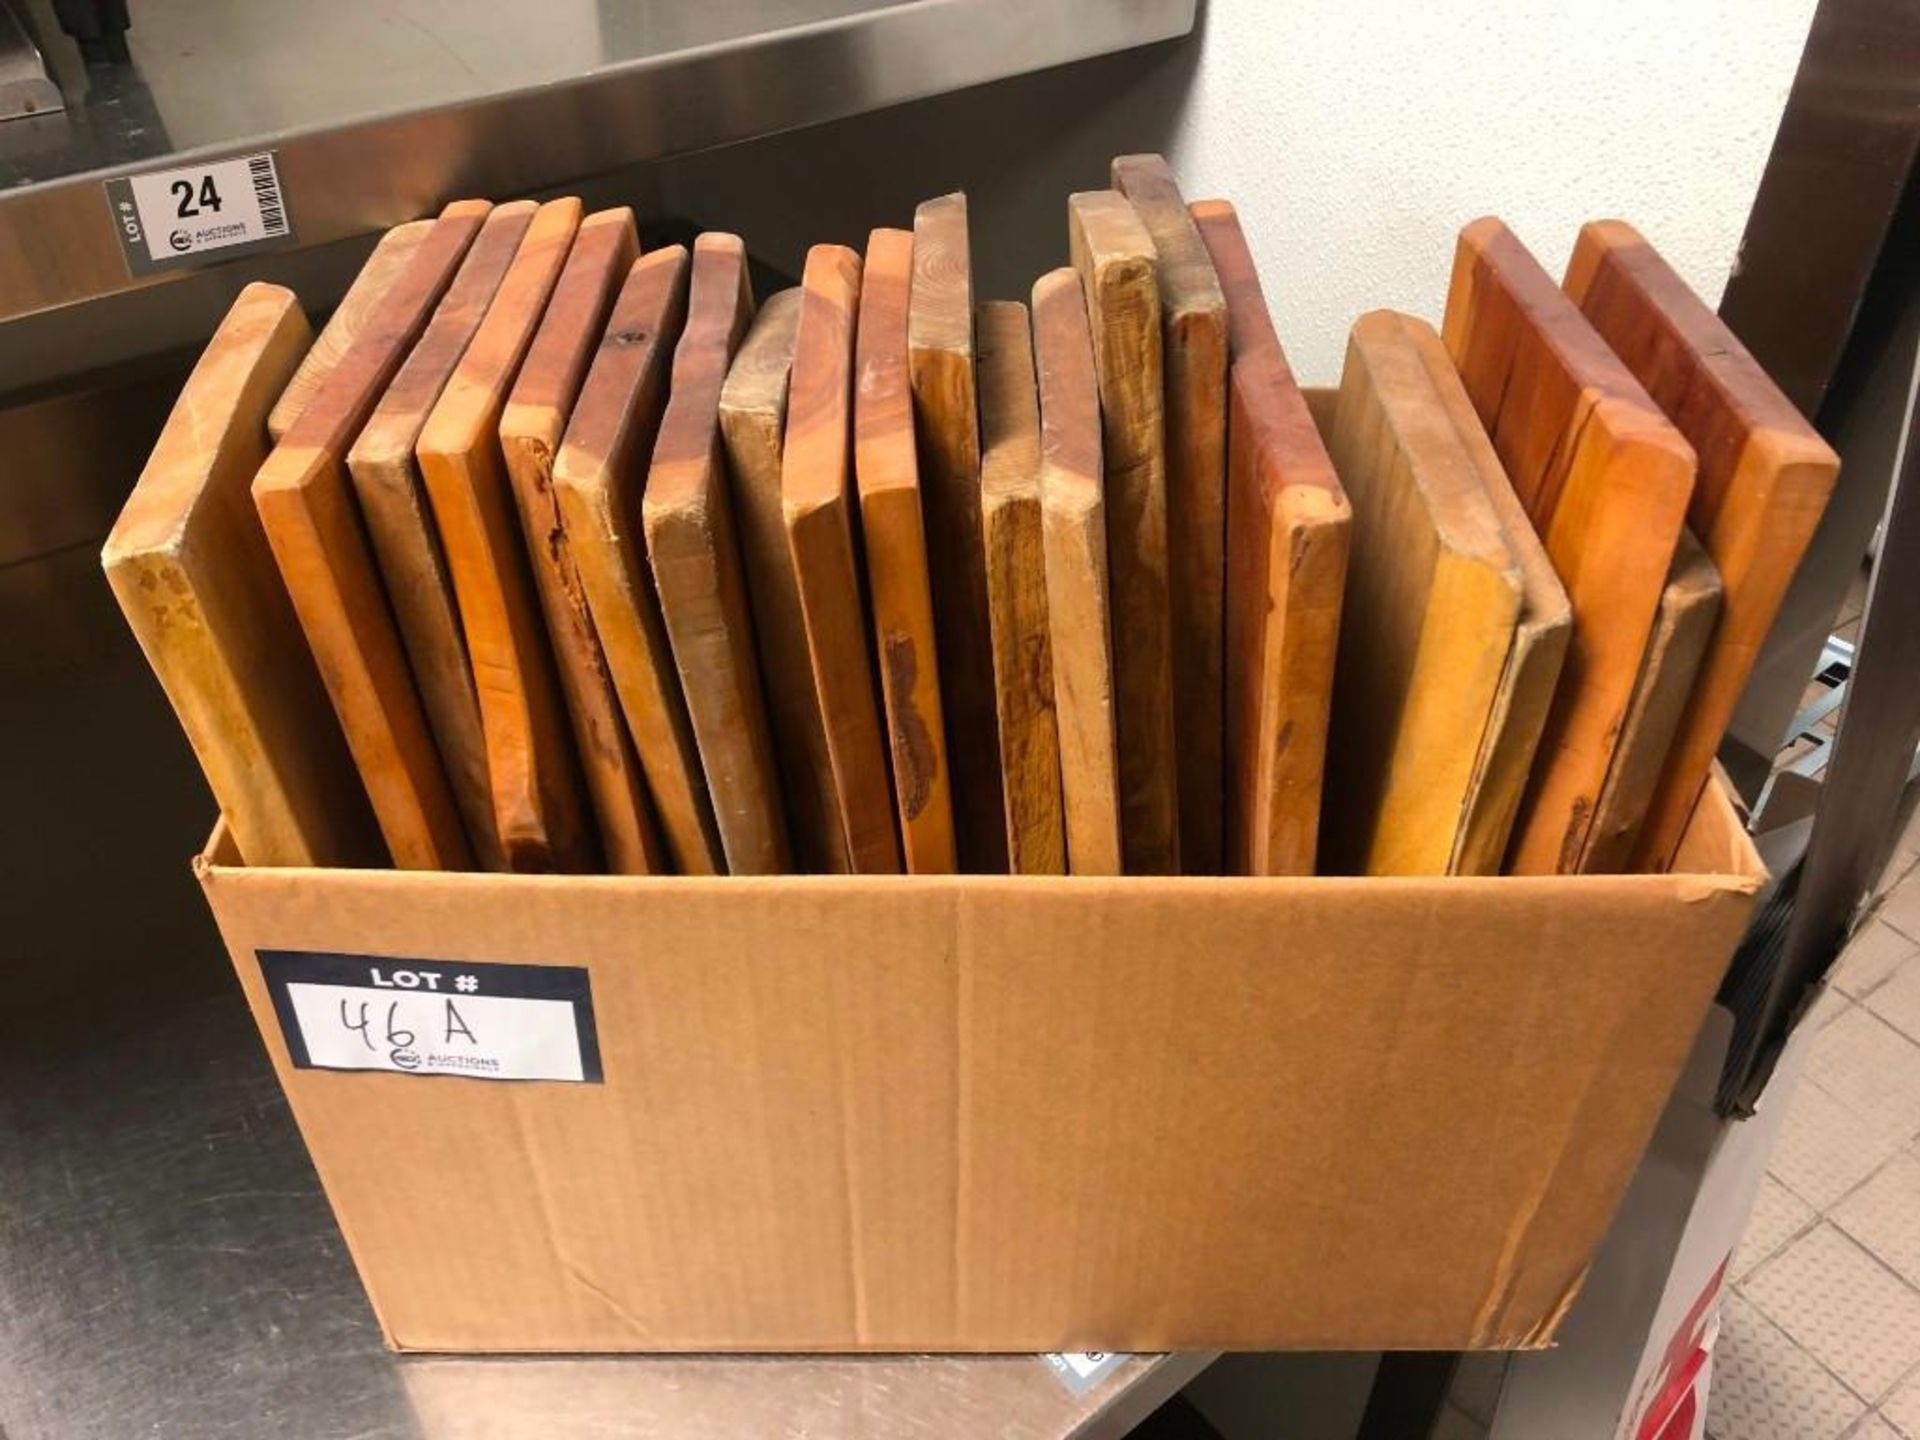 BOX OF HAND CRAFTED CANADIAN CHEESE BOARDS